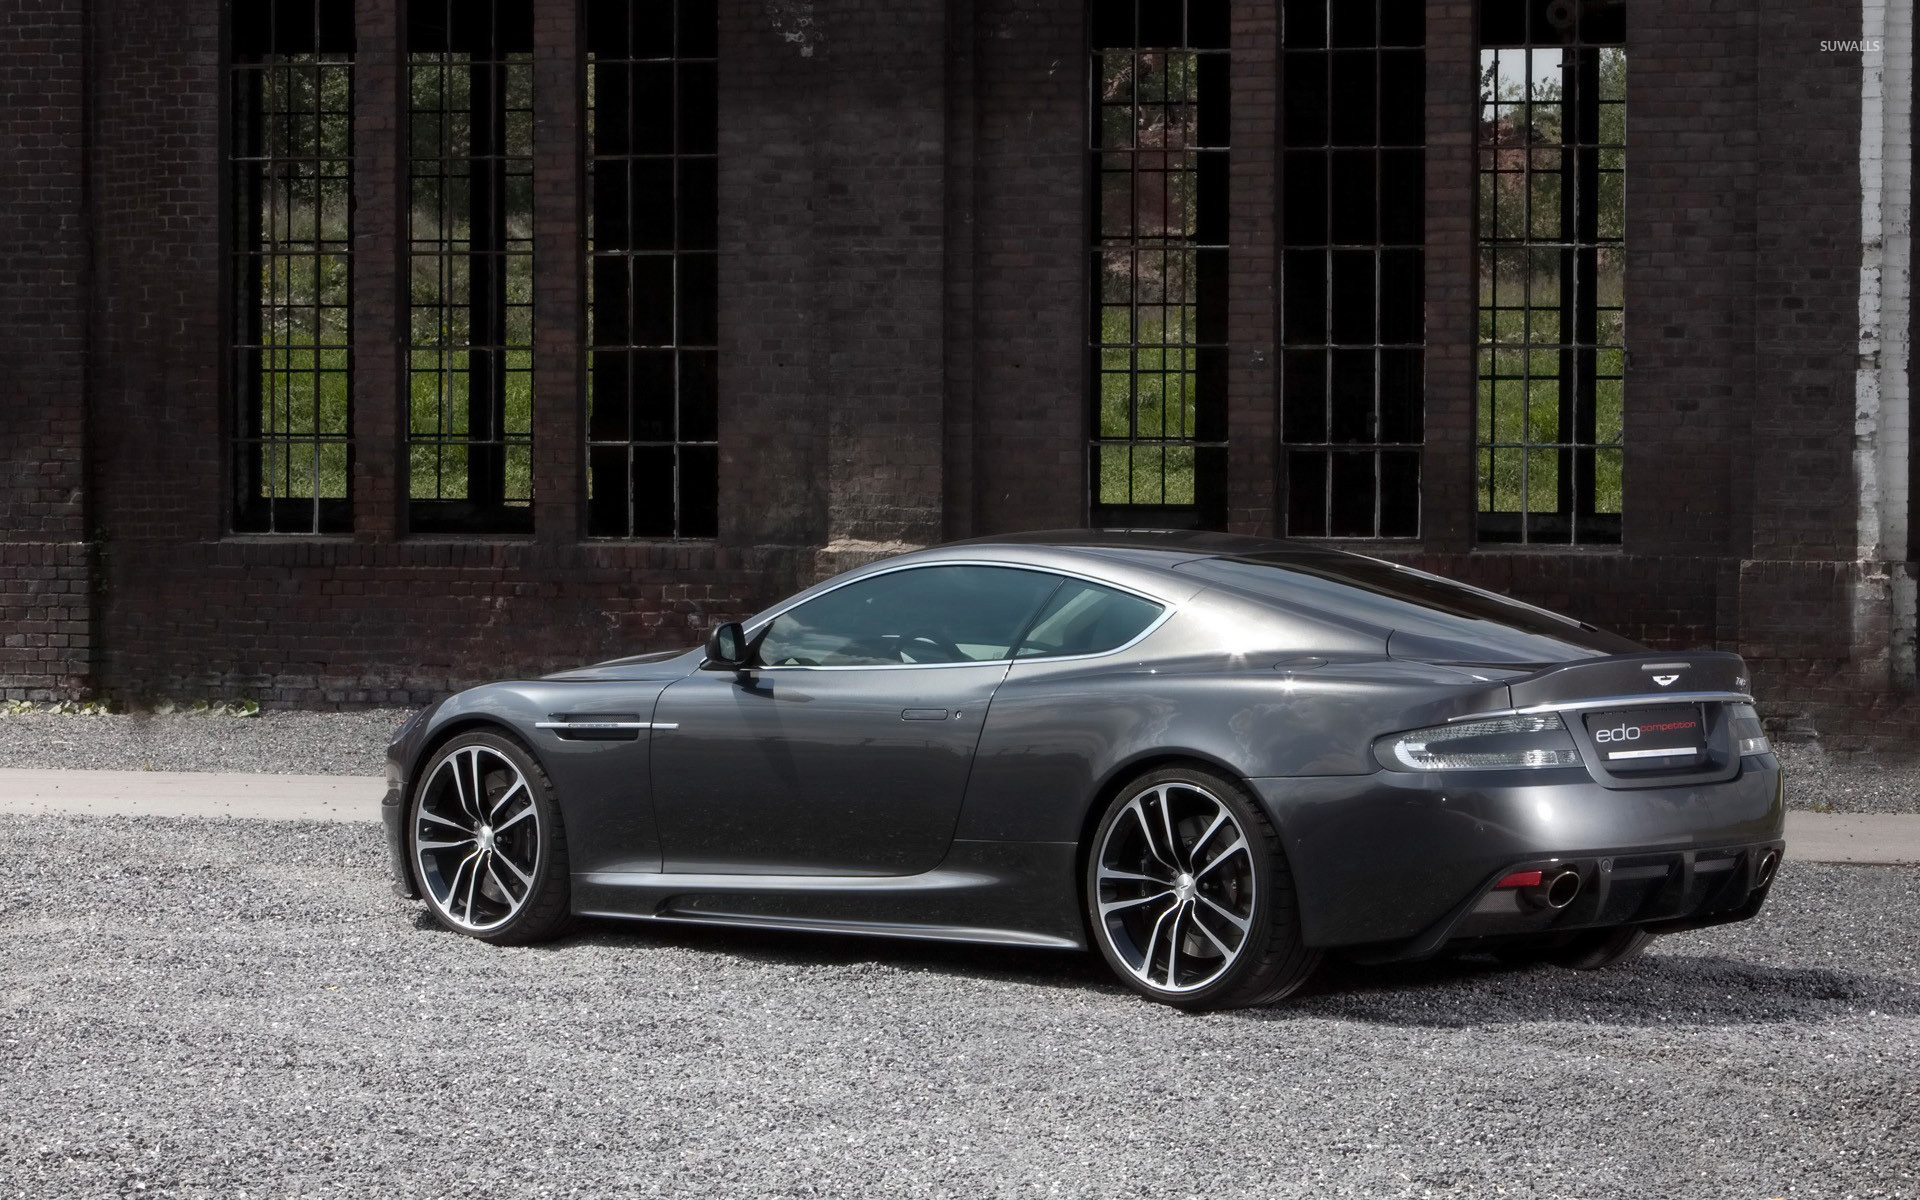 Aston Martin DB Carbon Black Edition Front HD Wallpaper